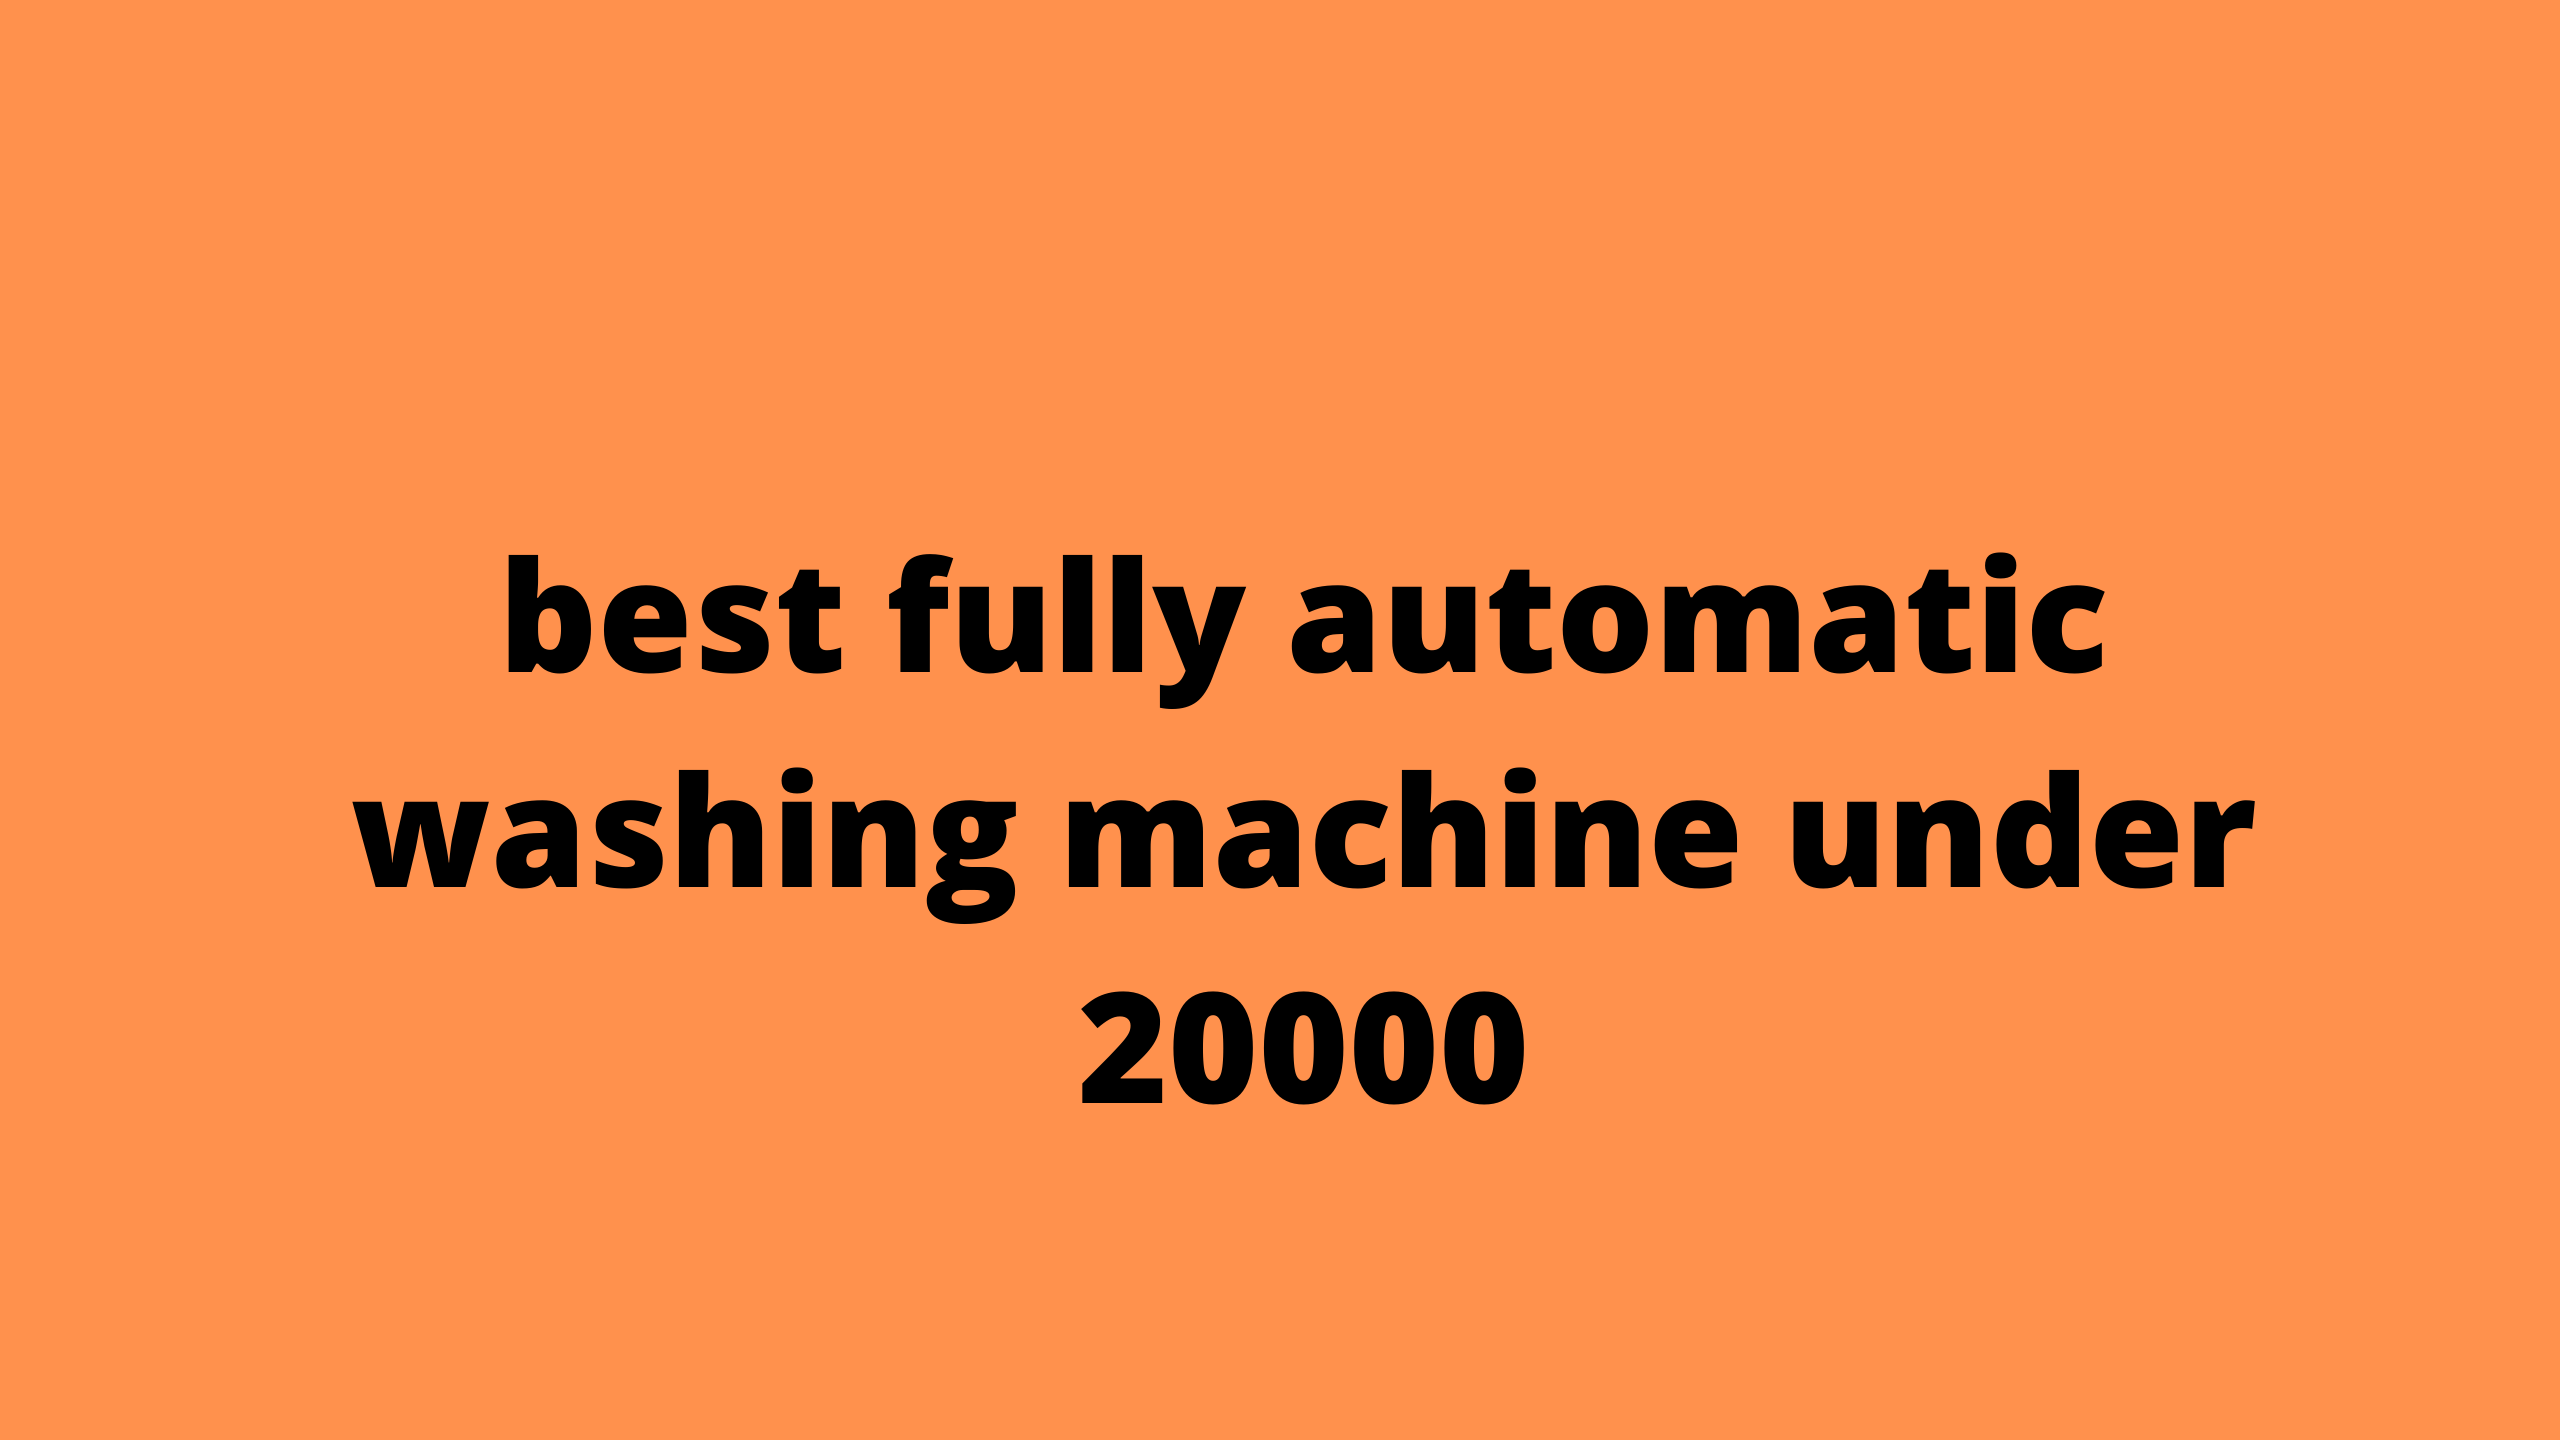 best fully automatic washing machine under 20000